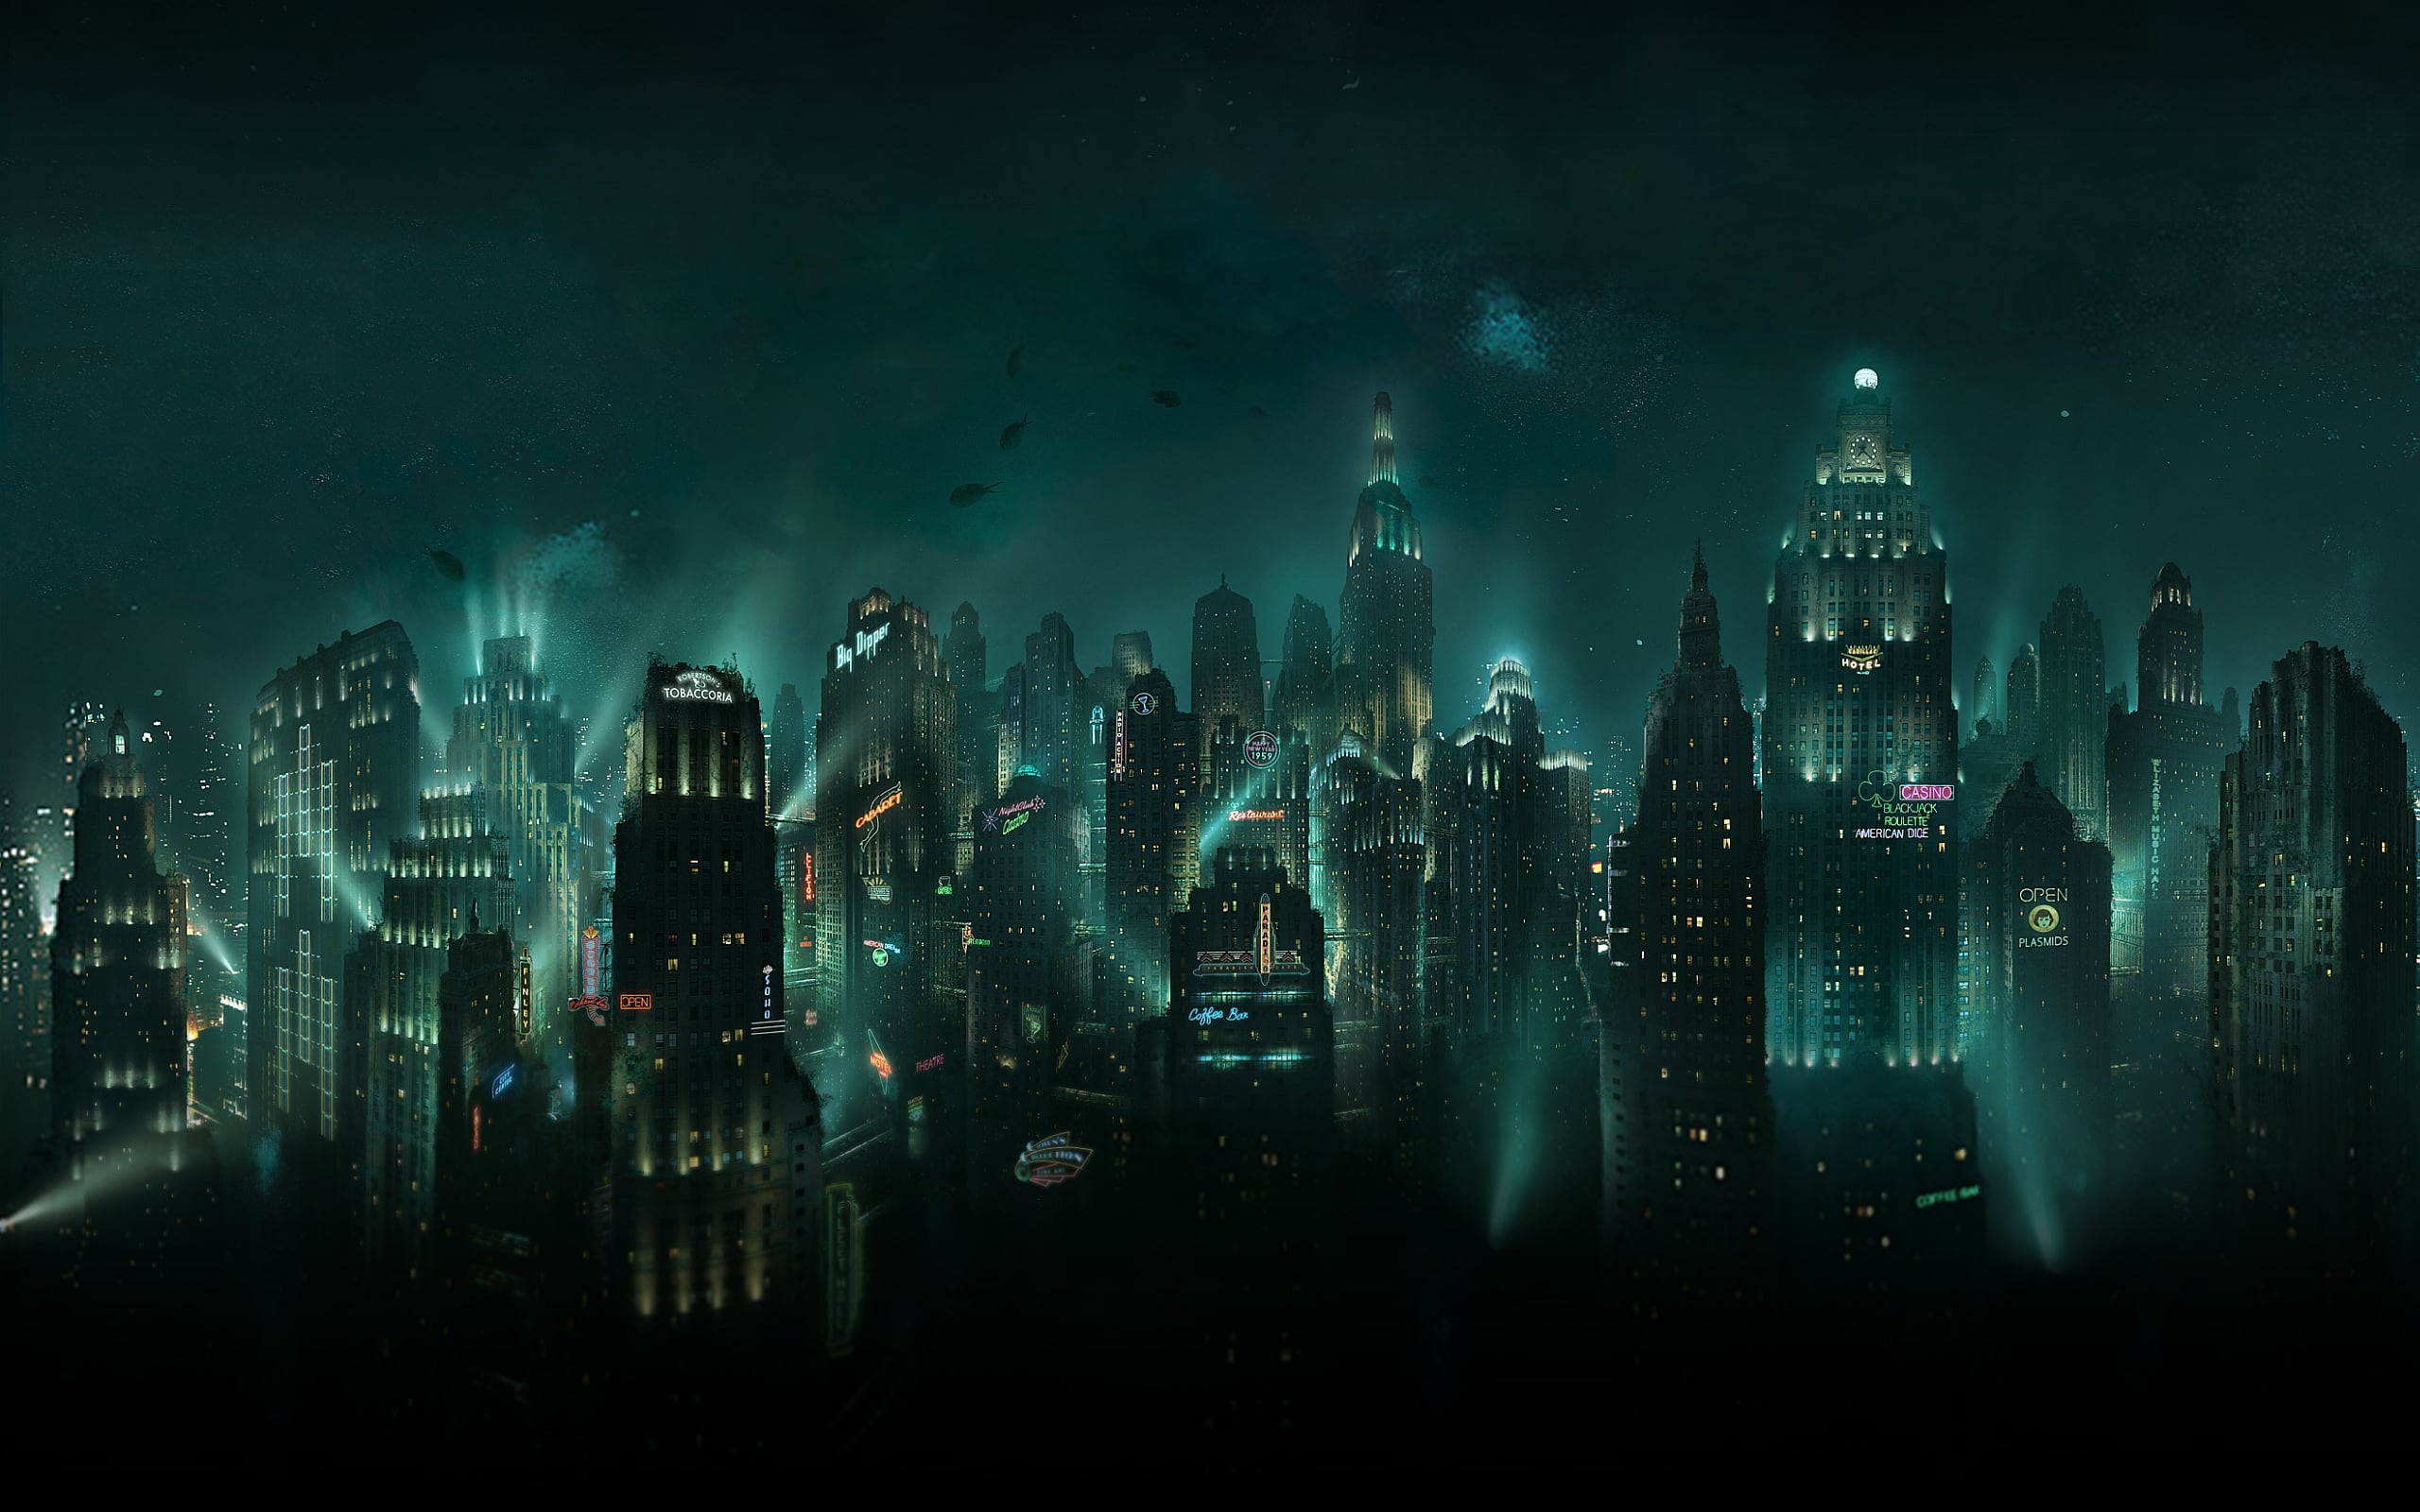 BioShock: The Collection Wallpapers hd